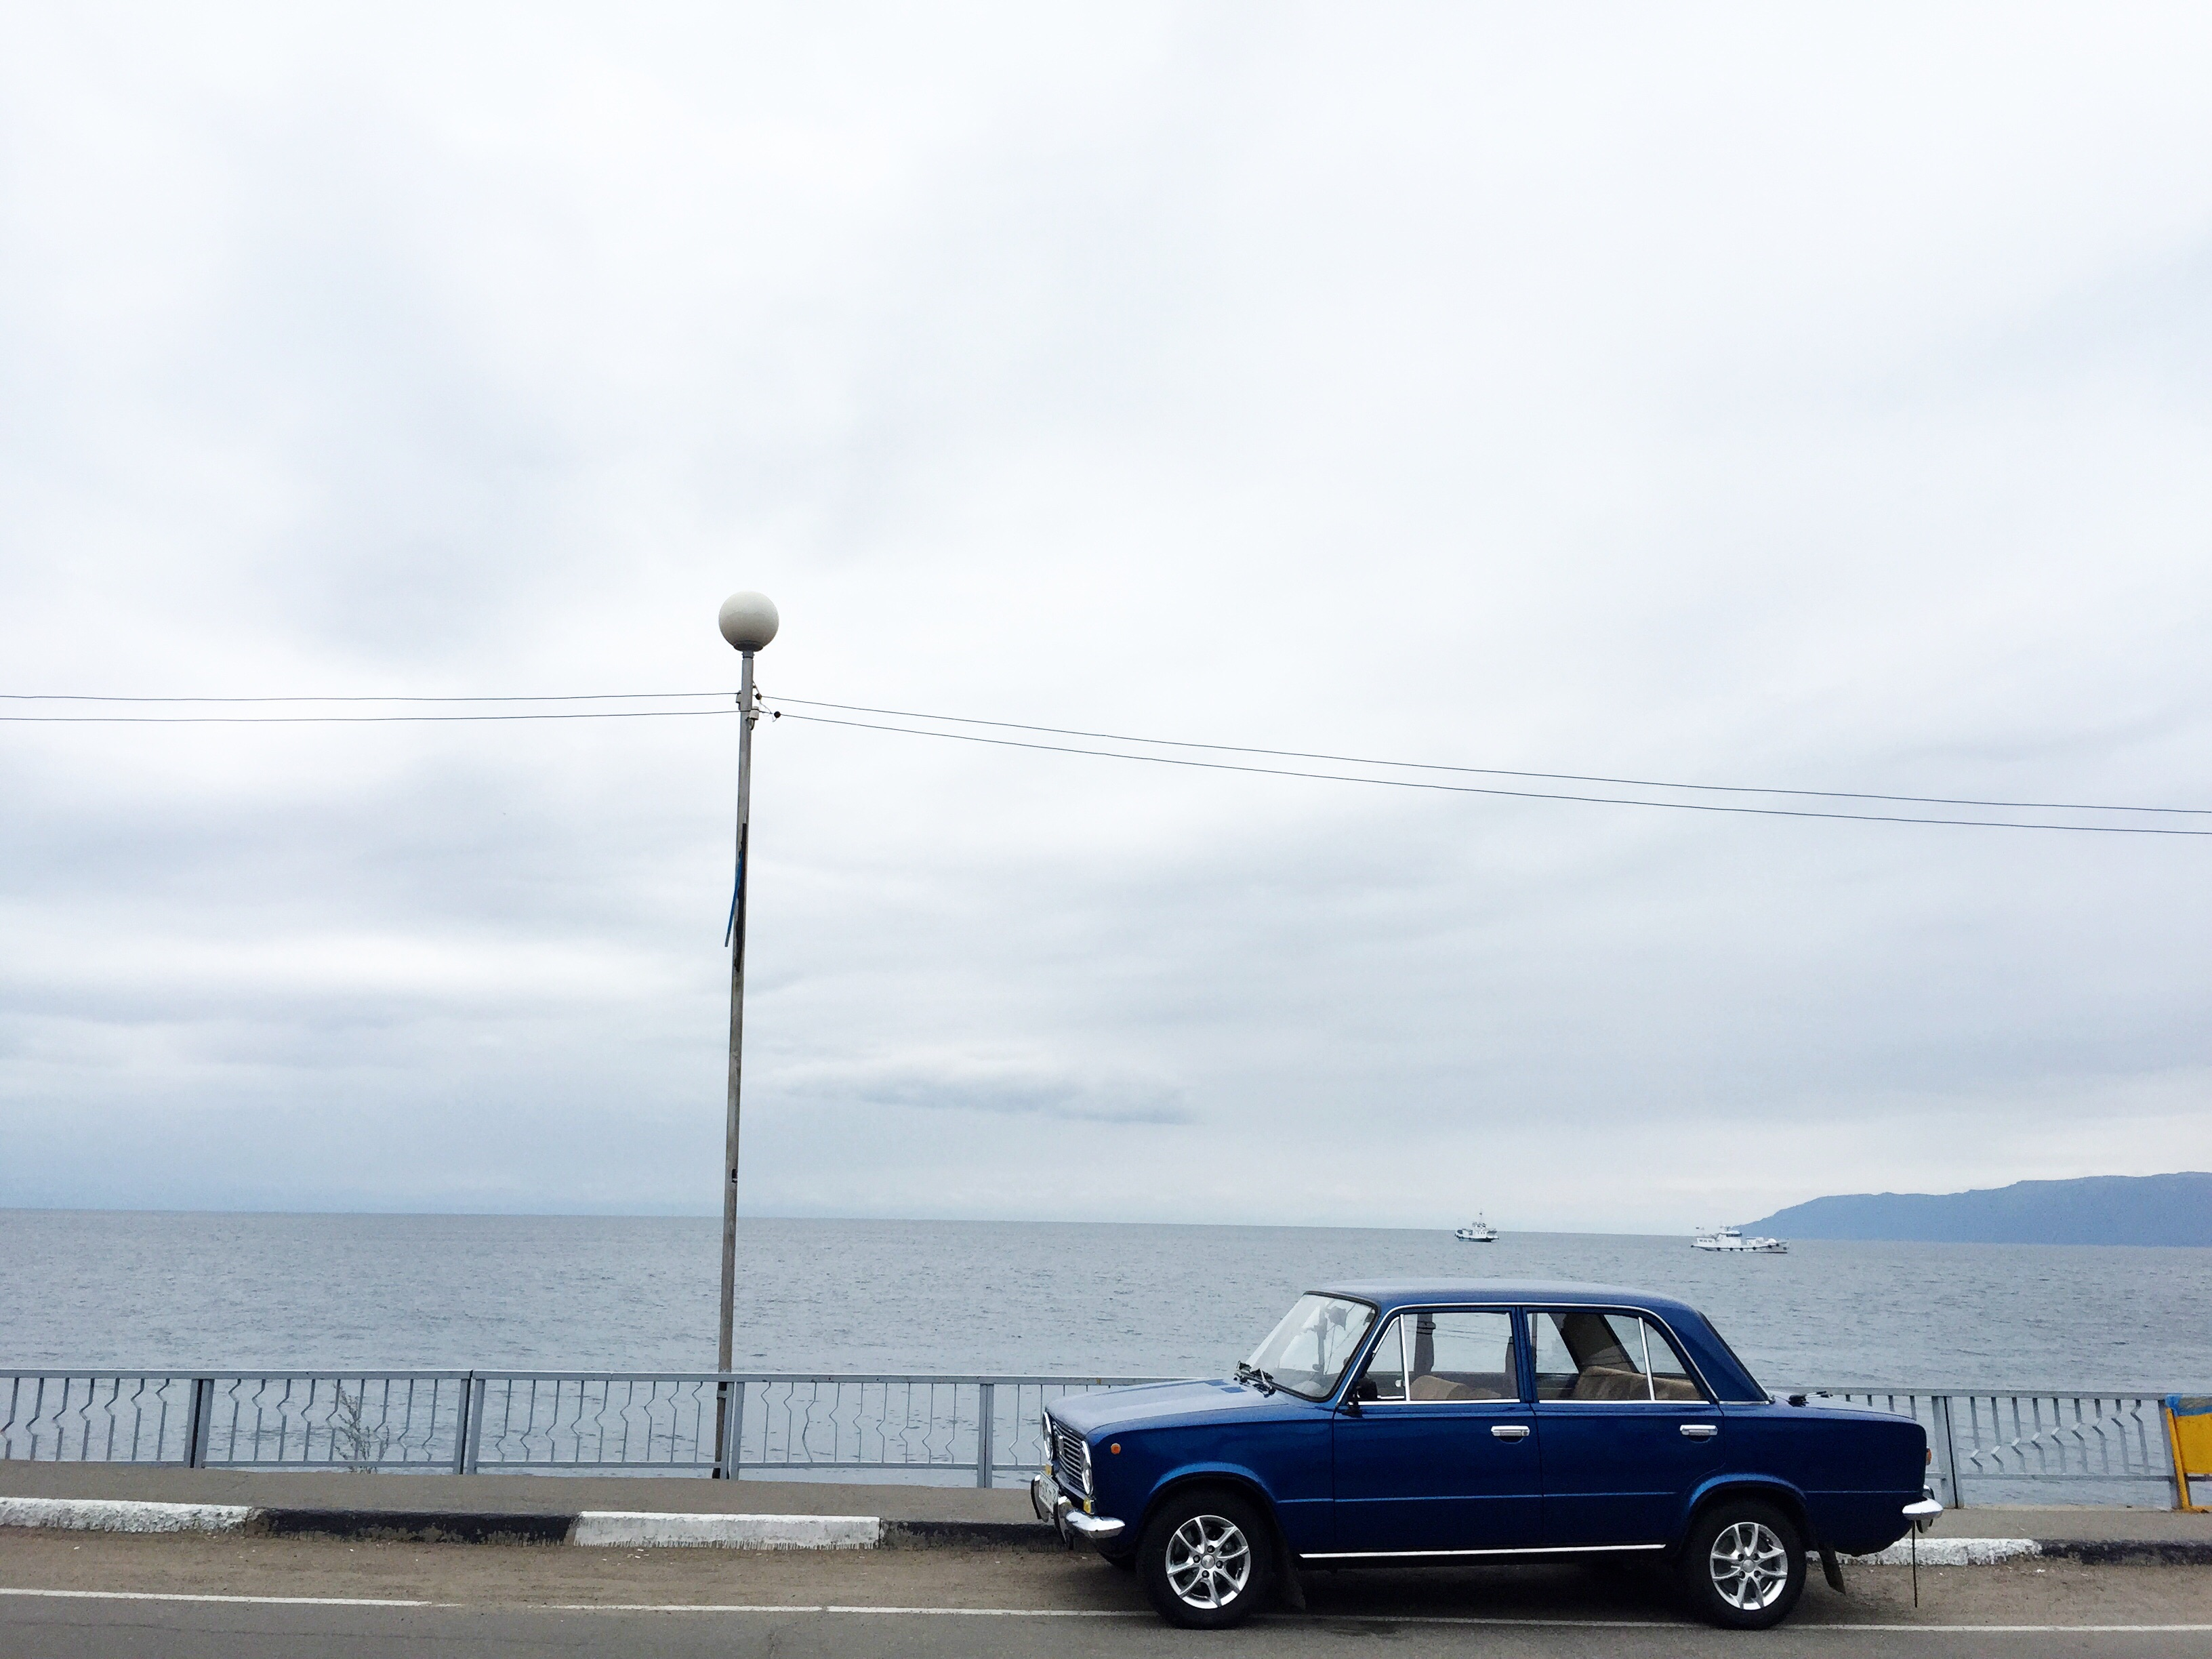 We spotted this absolutely gorgeous car as we were coming down the hill from the hotel. Against the lake it was especially spectacular.